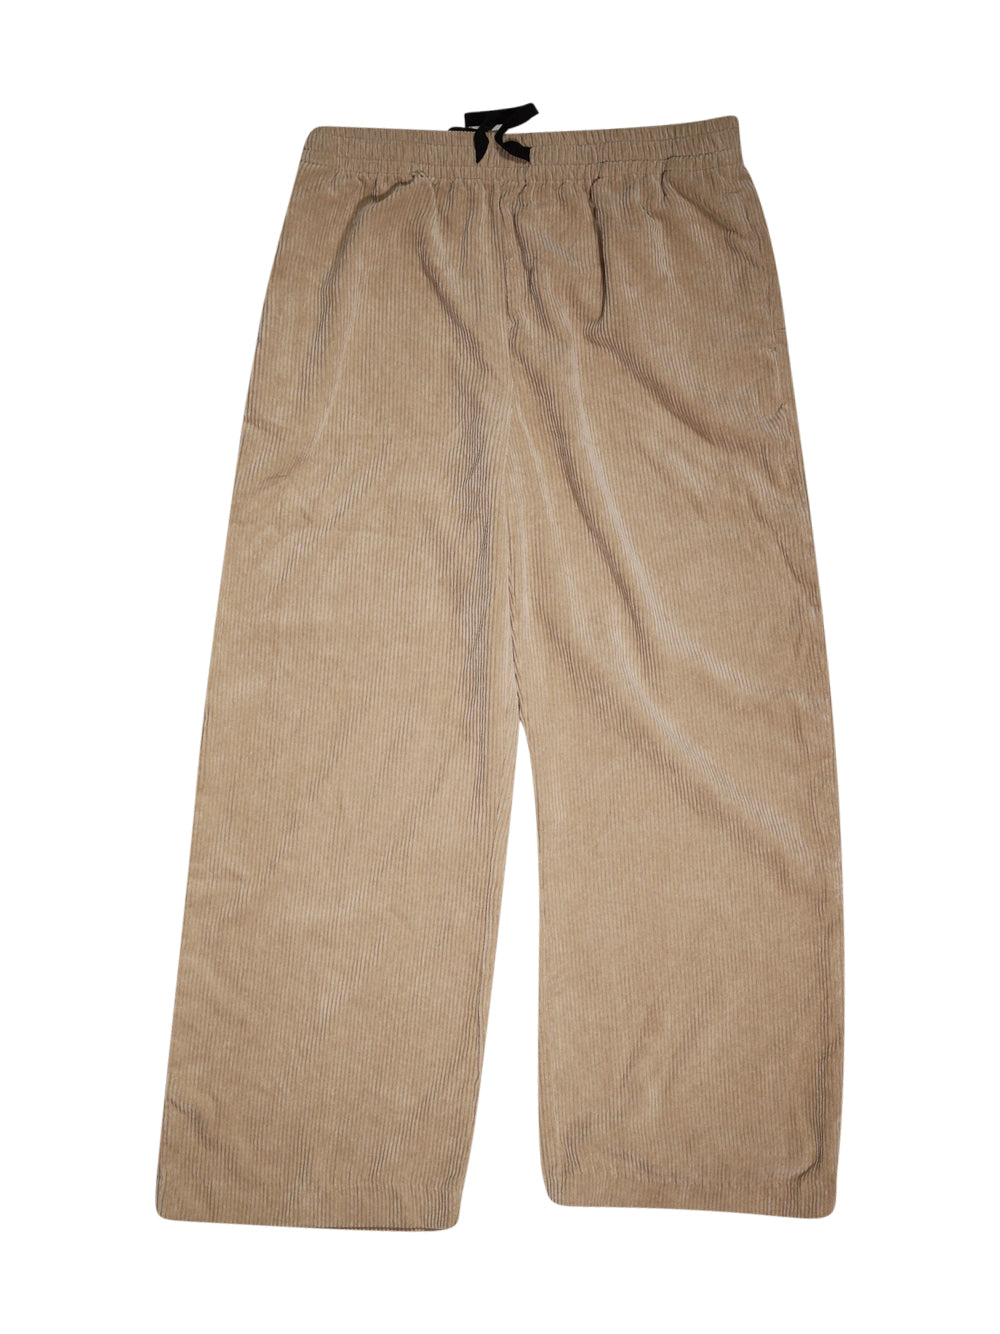 Front photo of Preloved Asos Beige Woman's trousers - size 16/XXL